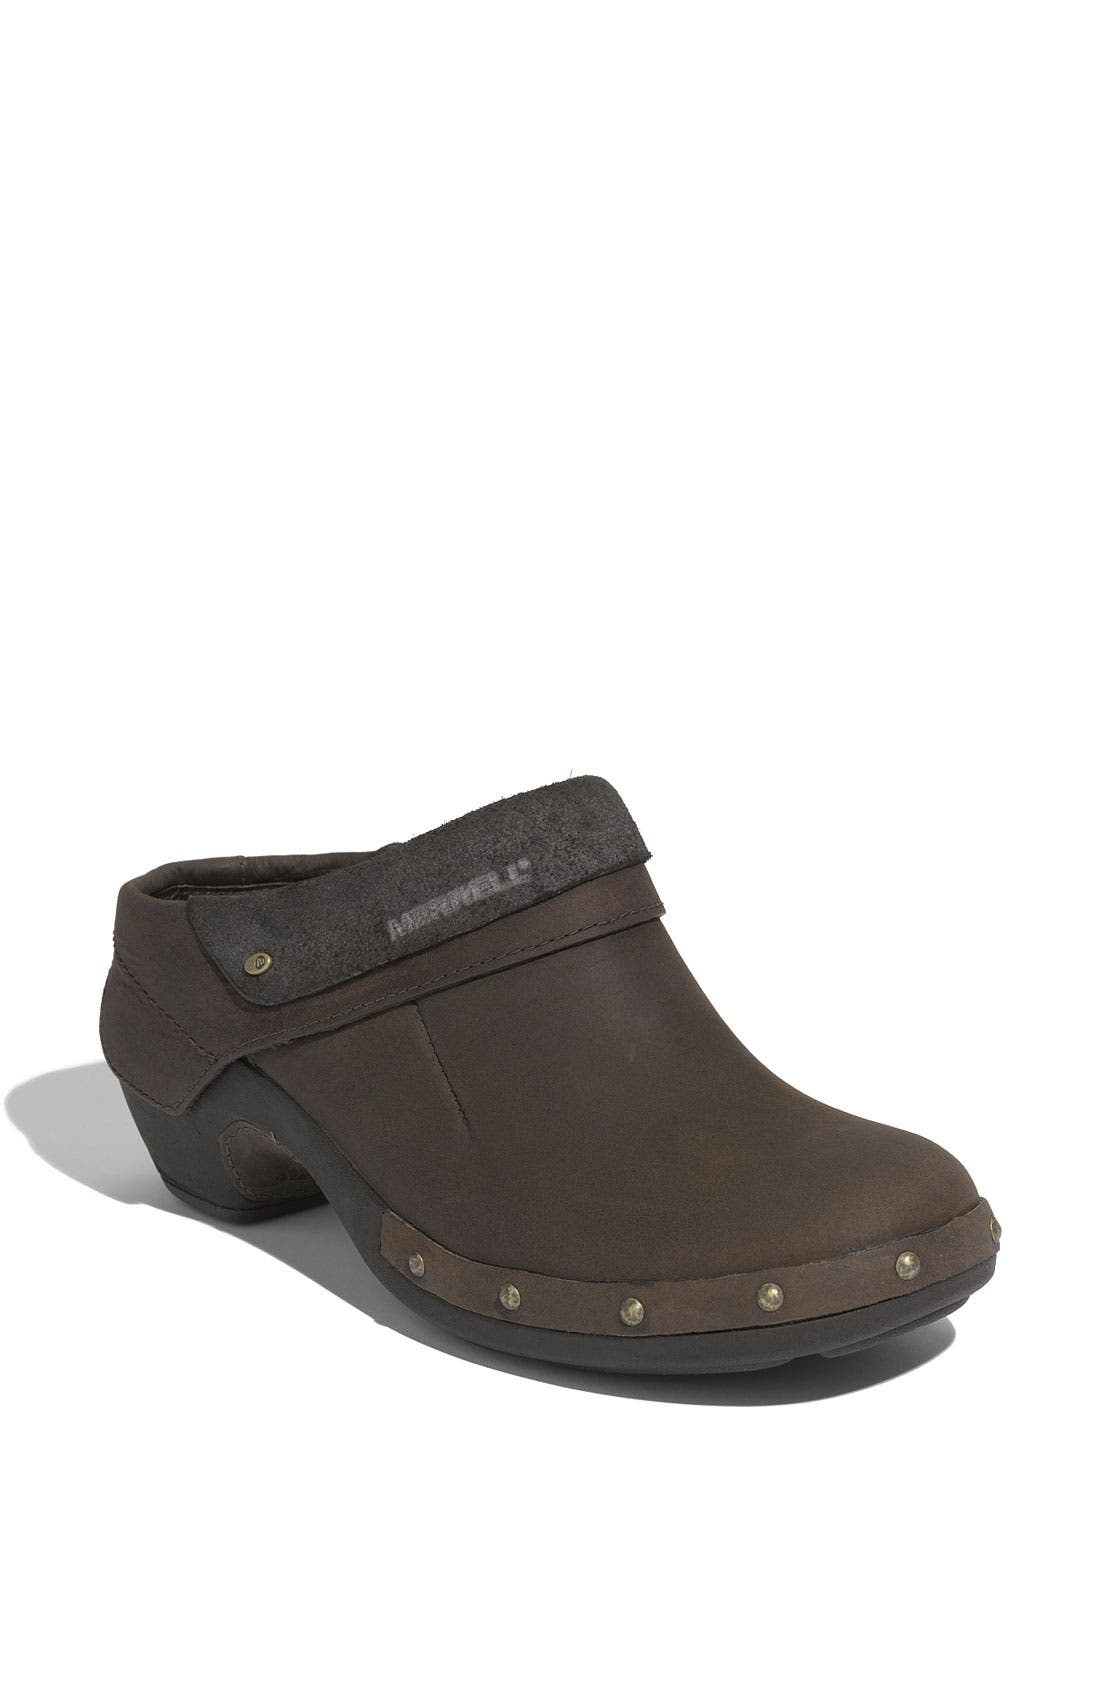 Alternate Image 1 Selected - Merrell 'Luxe Wrap' Nubuck Leather Clog